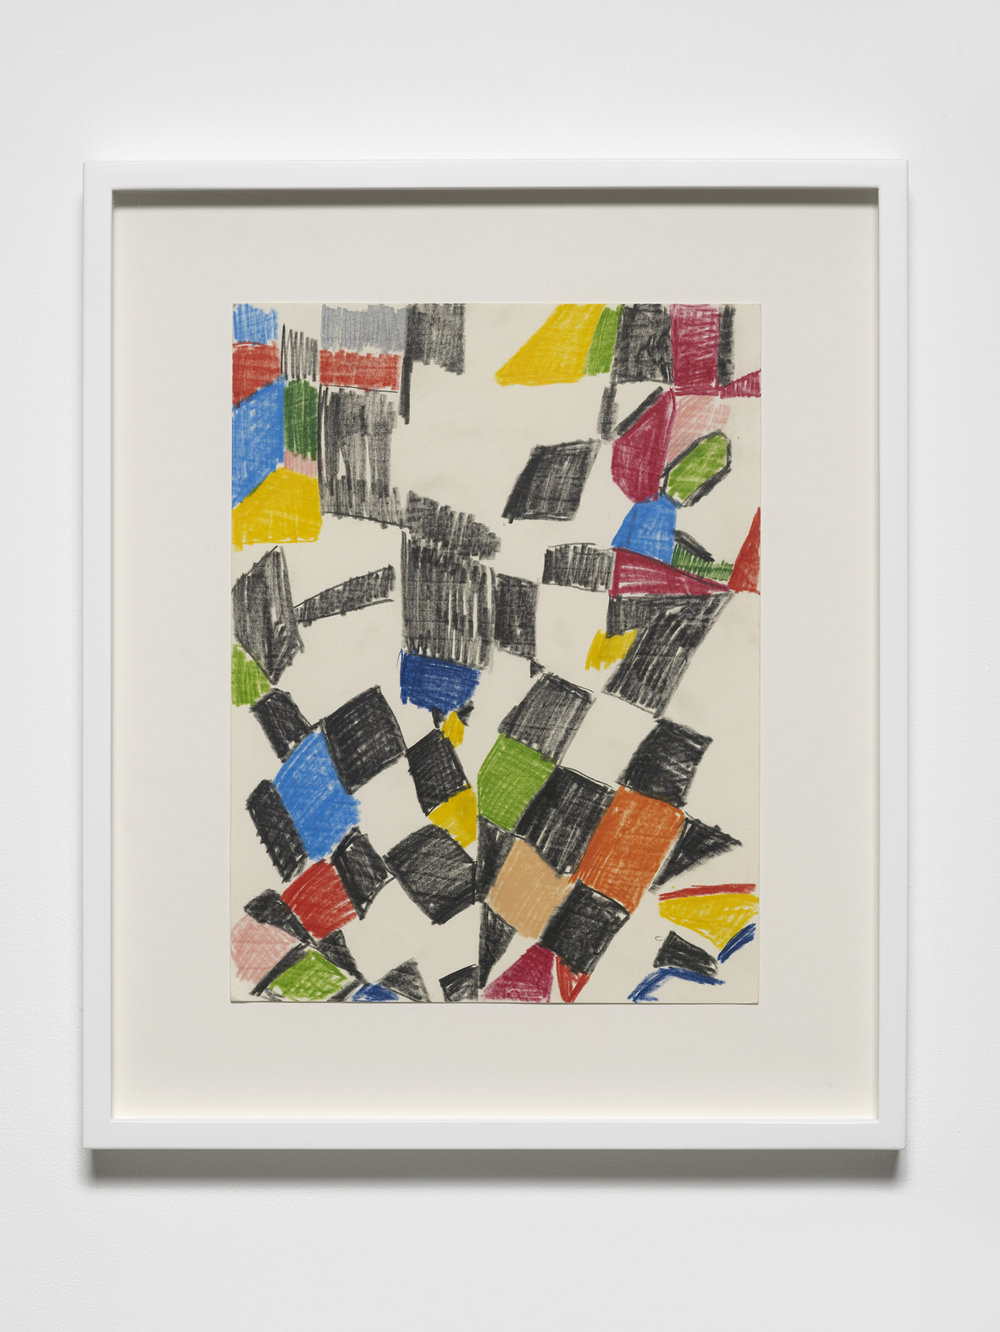 4020 Colour Study I 2015 Pencil on paper 30 x 23 cm / 11.8 x 9 in unframed 42.6 x 35.6 cm / 16.8 x 14 in framed